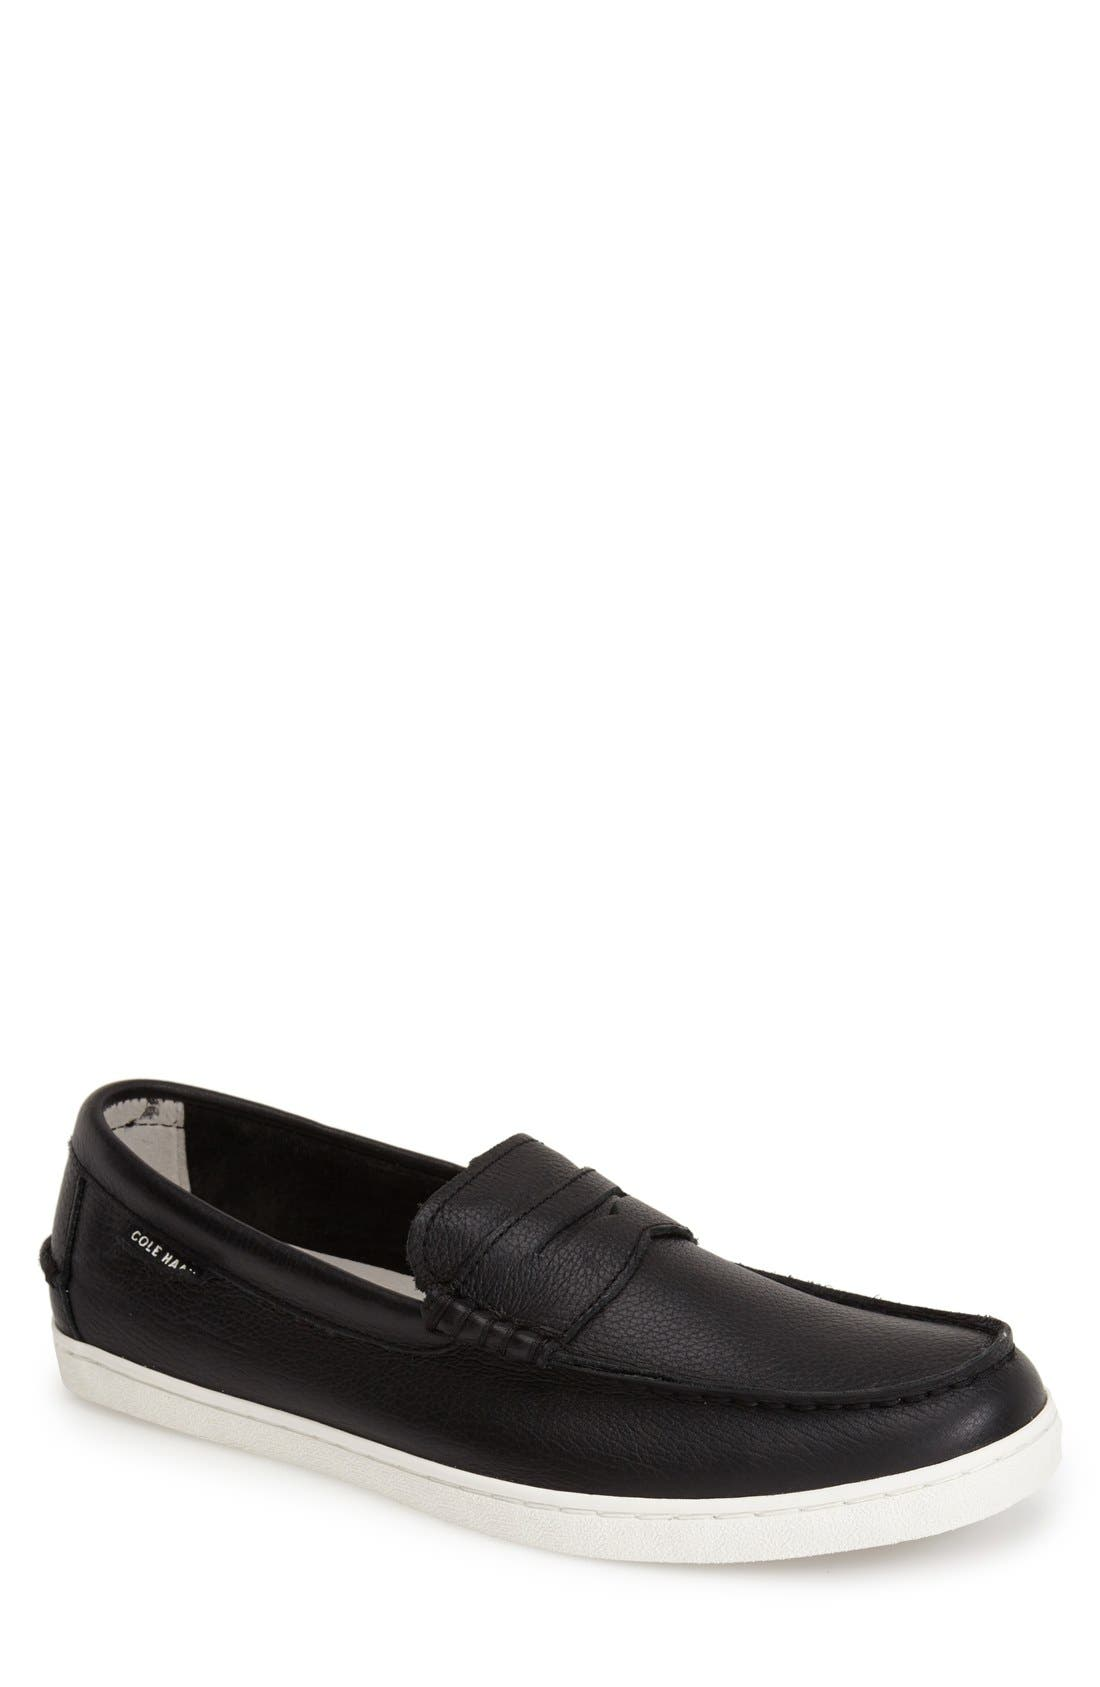 'Pinch' Penny Loafer,                         Main,                         color, Black Leather/ White